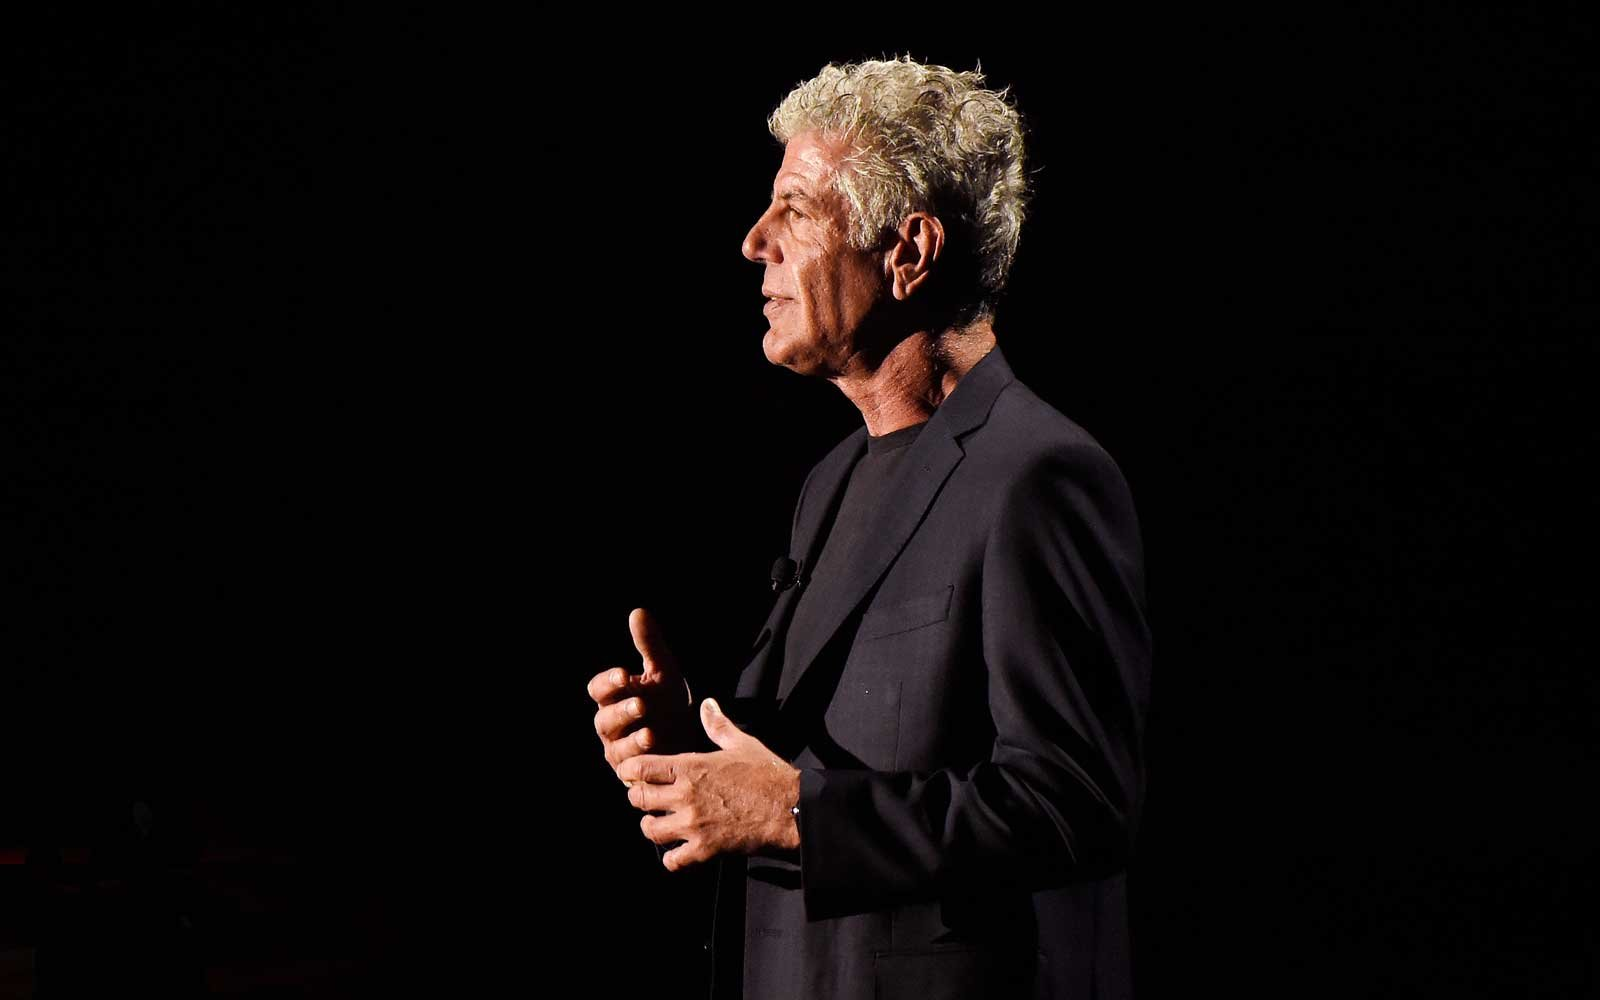 Anthony Bourdain at the Turner Upfronts in 2017